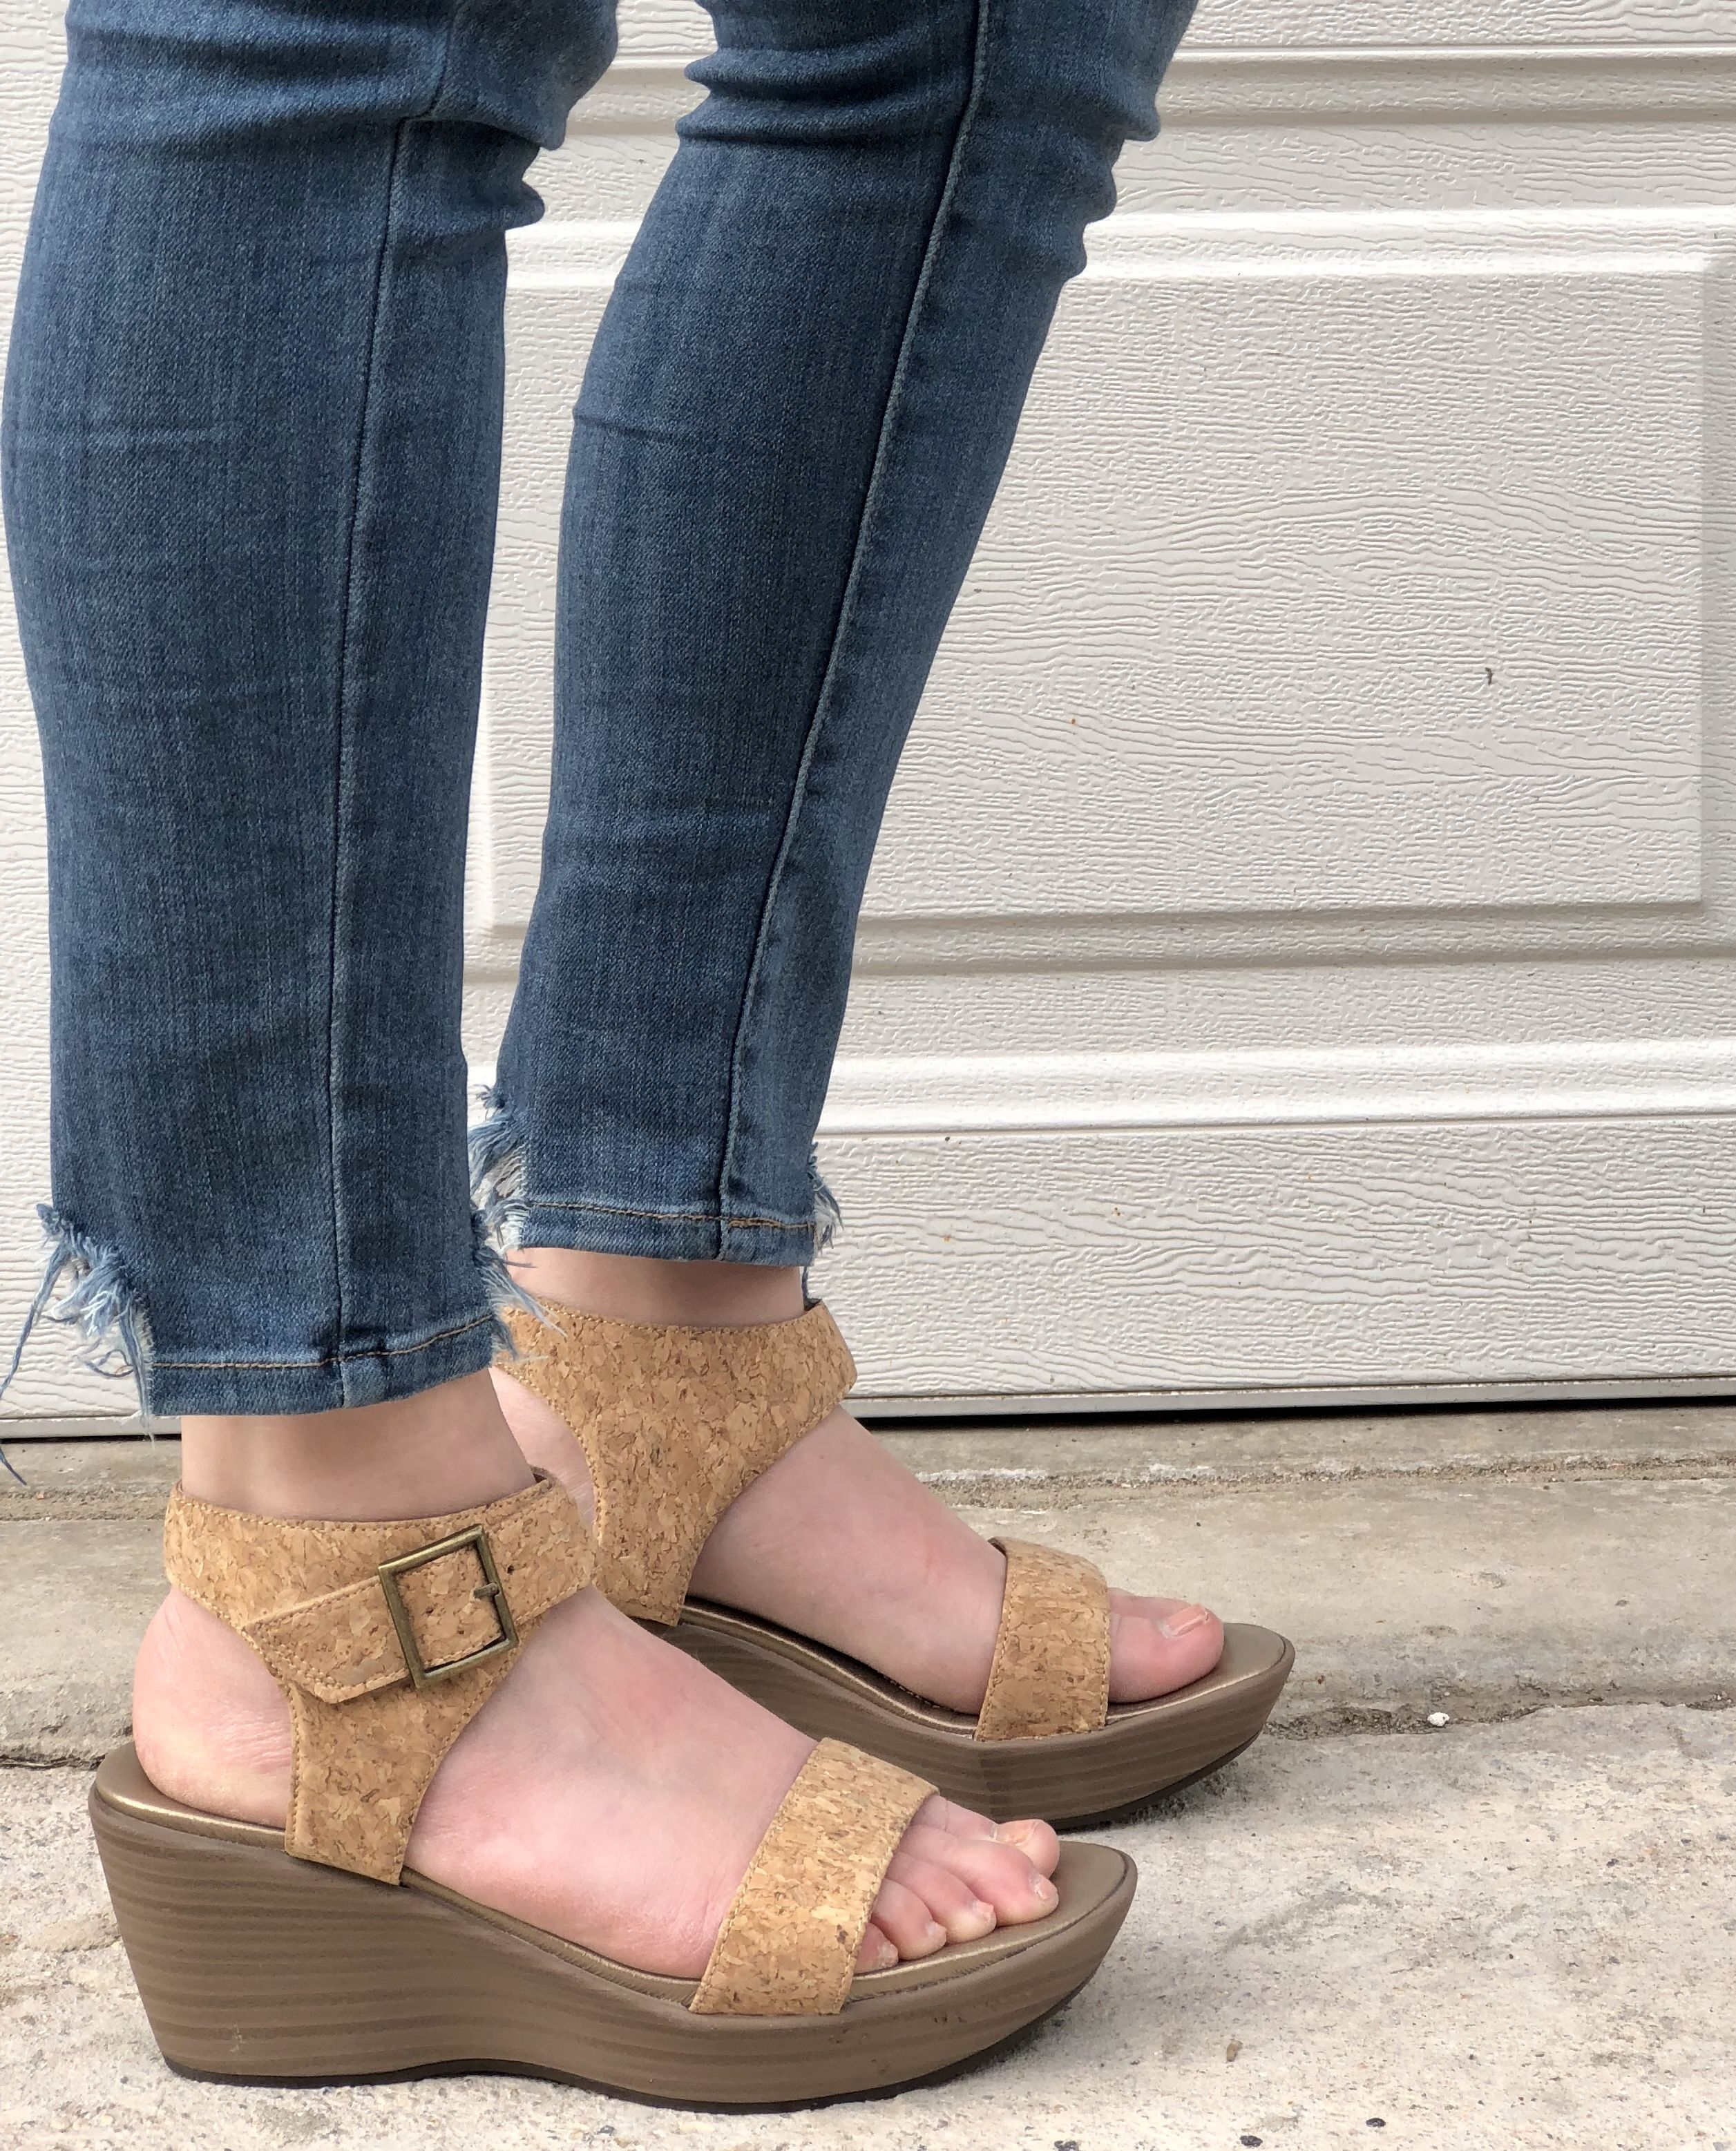 81a7a9c211c4 Step up your fashion game with our Cork Caprice  Wedges ✨ They have a 2.75